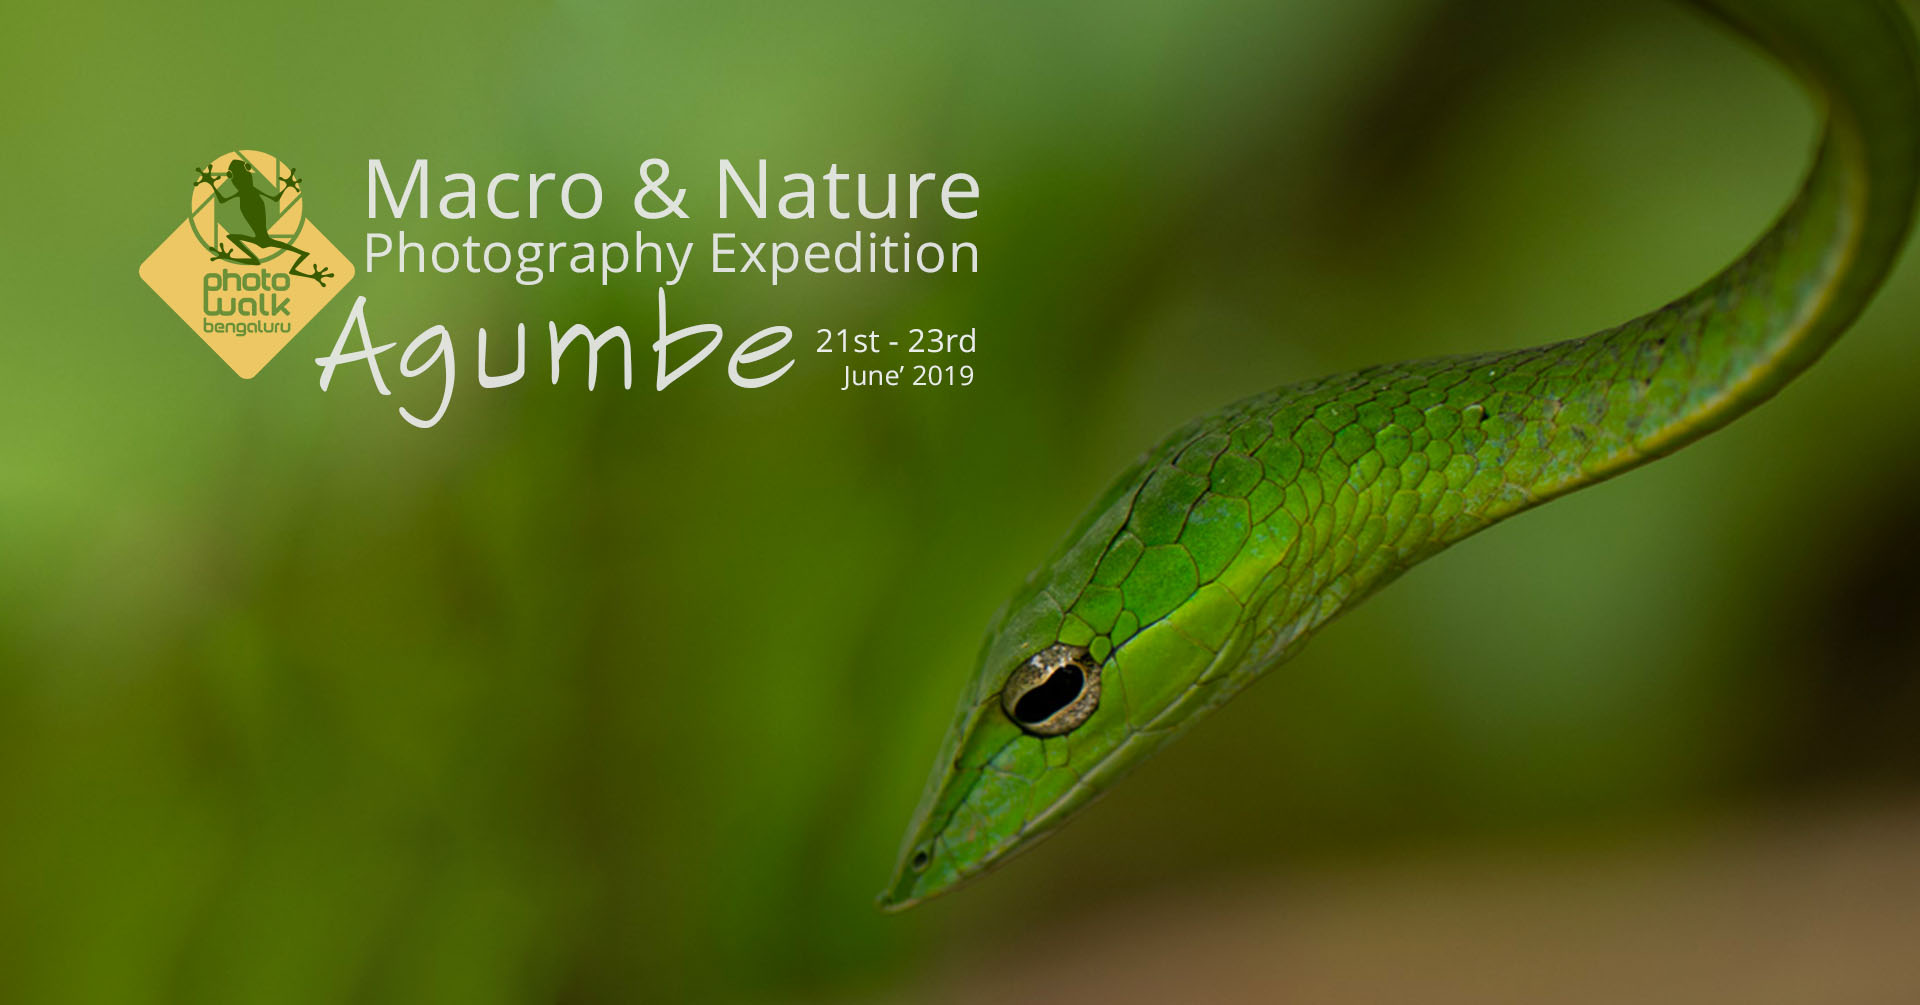 Macro & Nature Photography Expedition – Agumbe